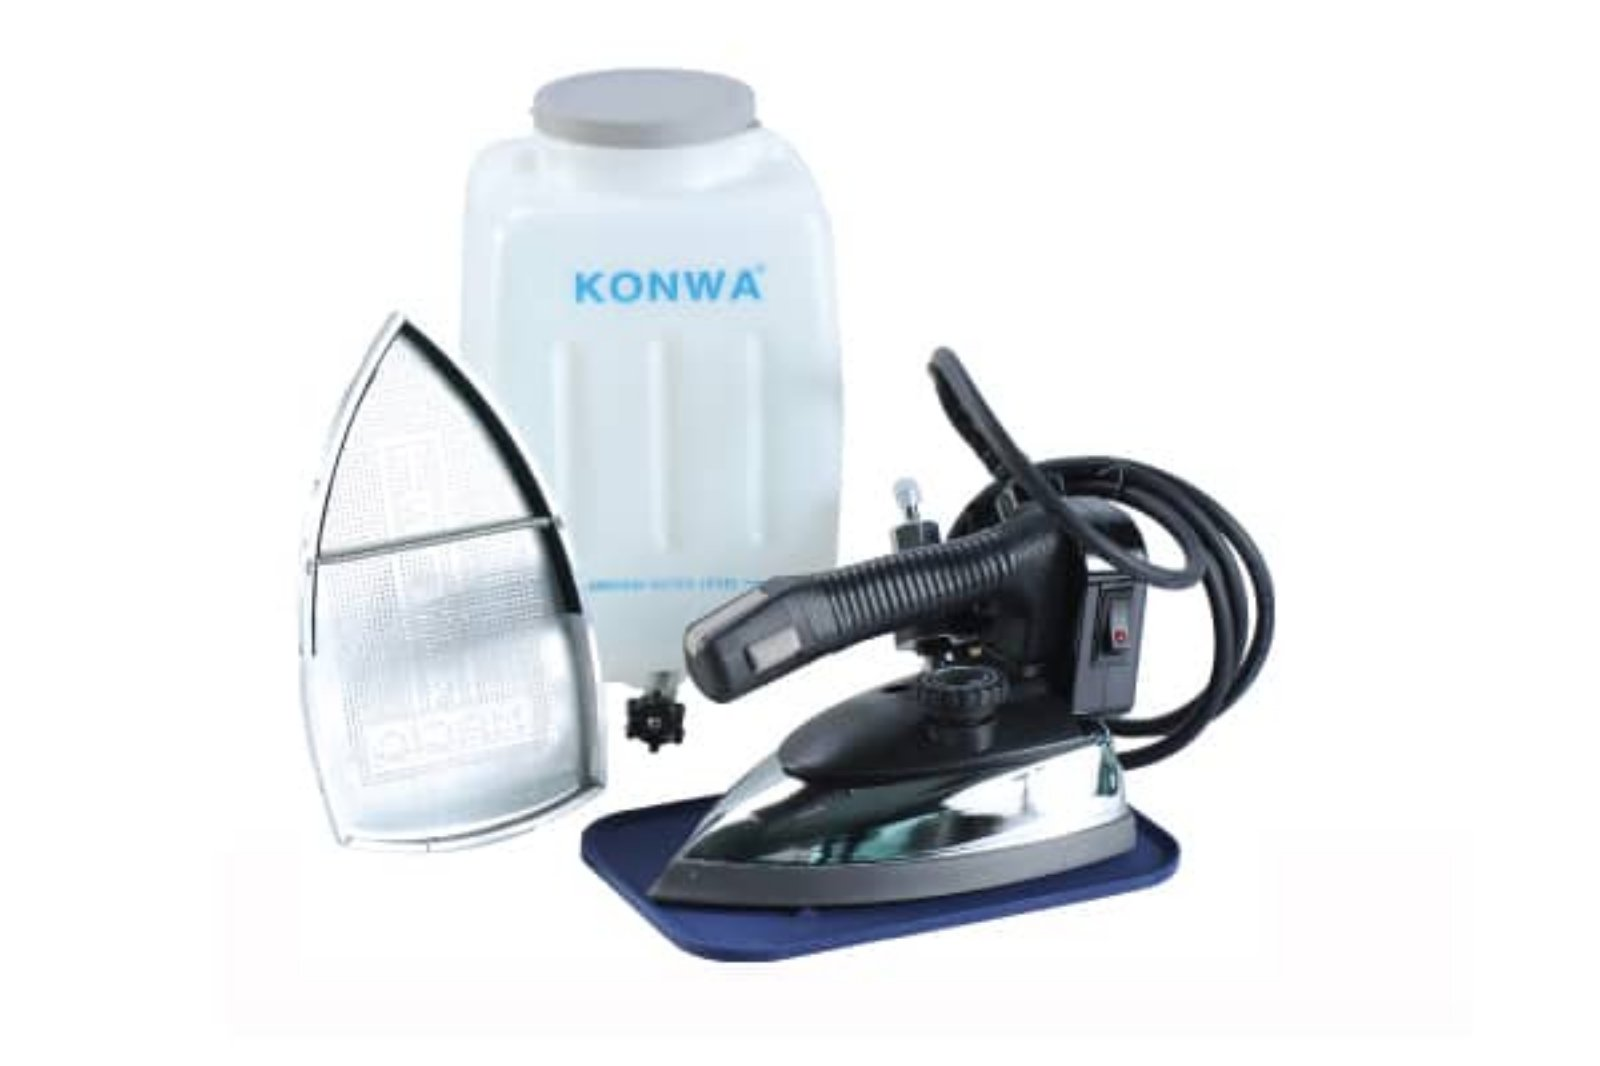 Konwa Iron Stream